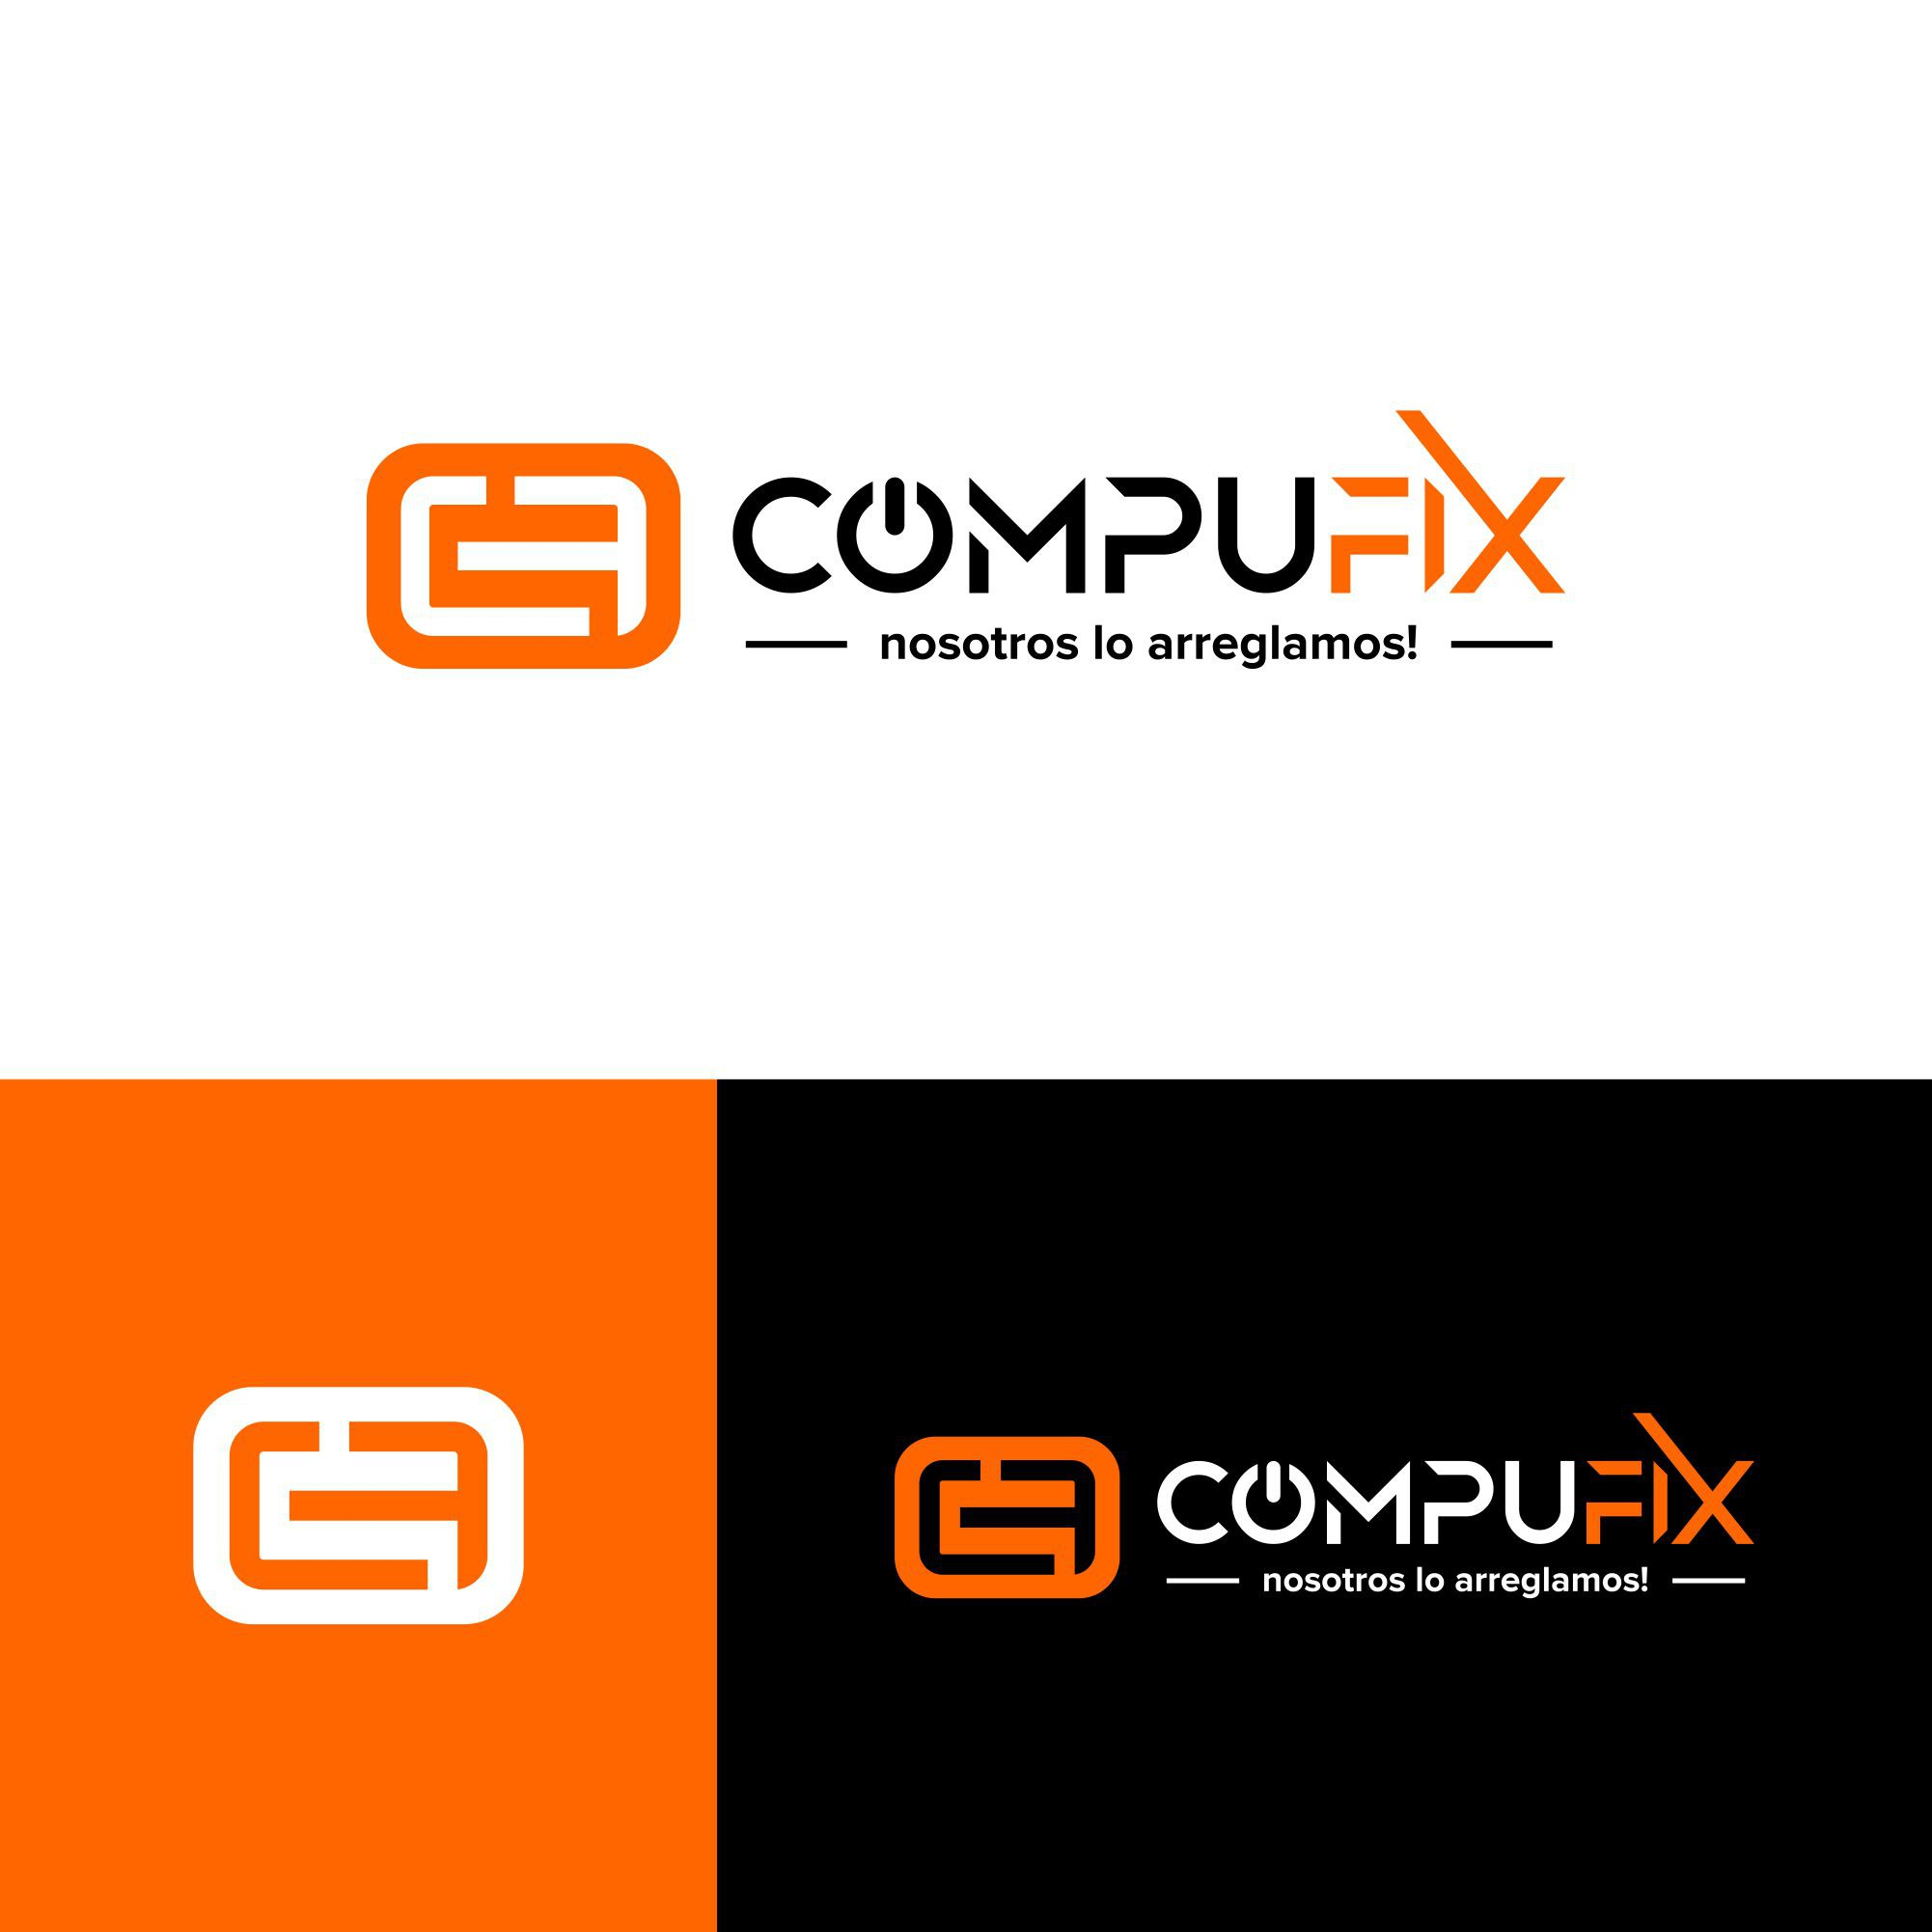 Small IT company in need of new brand guide and logo design